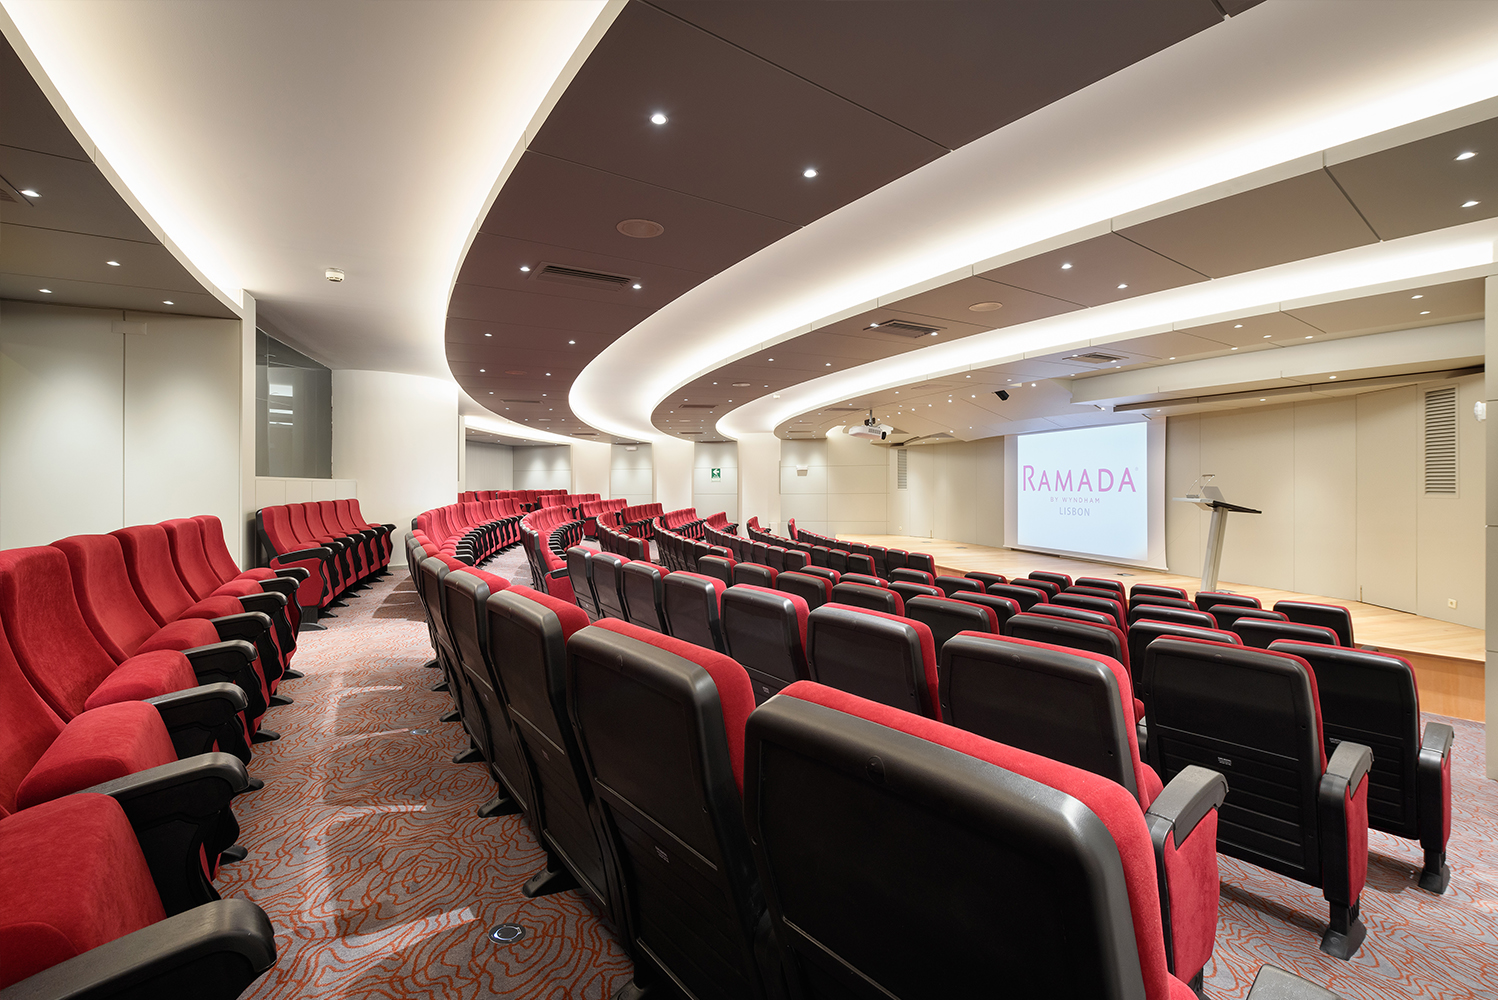 All of the rooms were provided with fixed equipment, including Wi-Fi and HD projector, screen and sound equipment integrated in a single command.